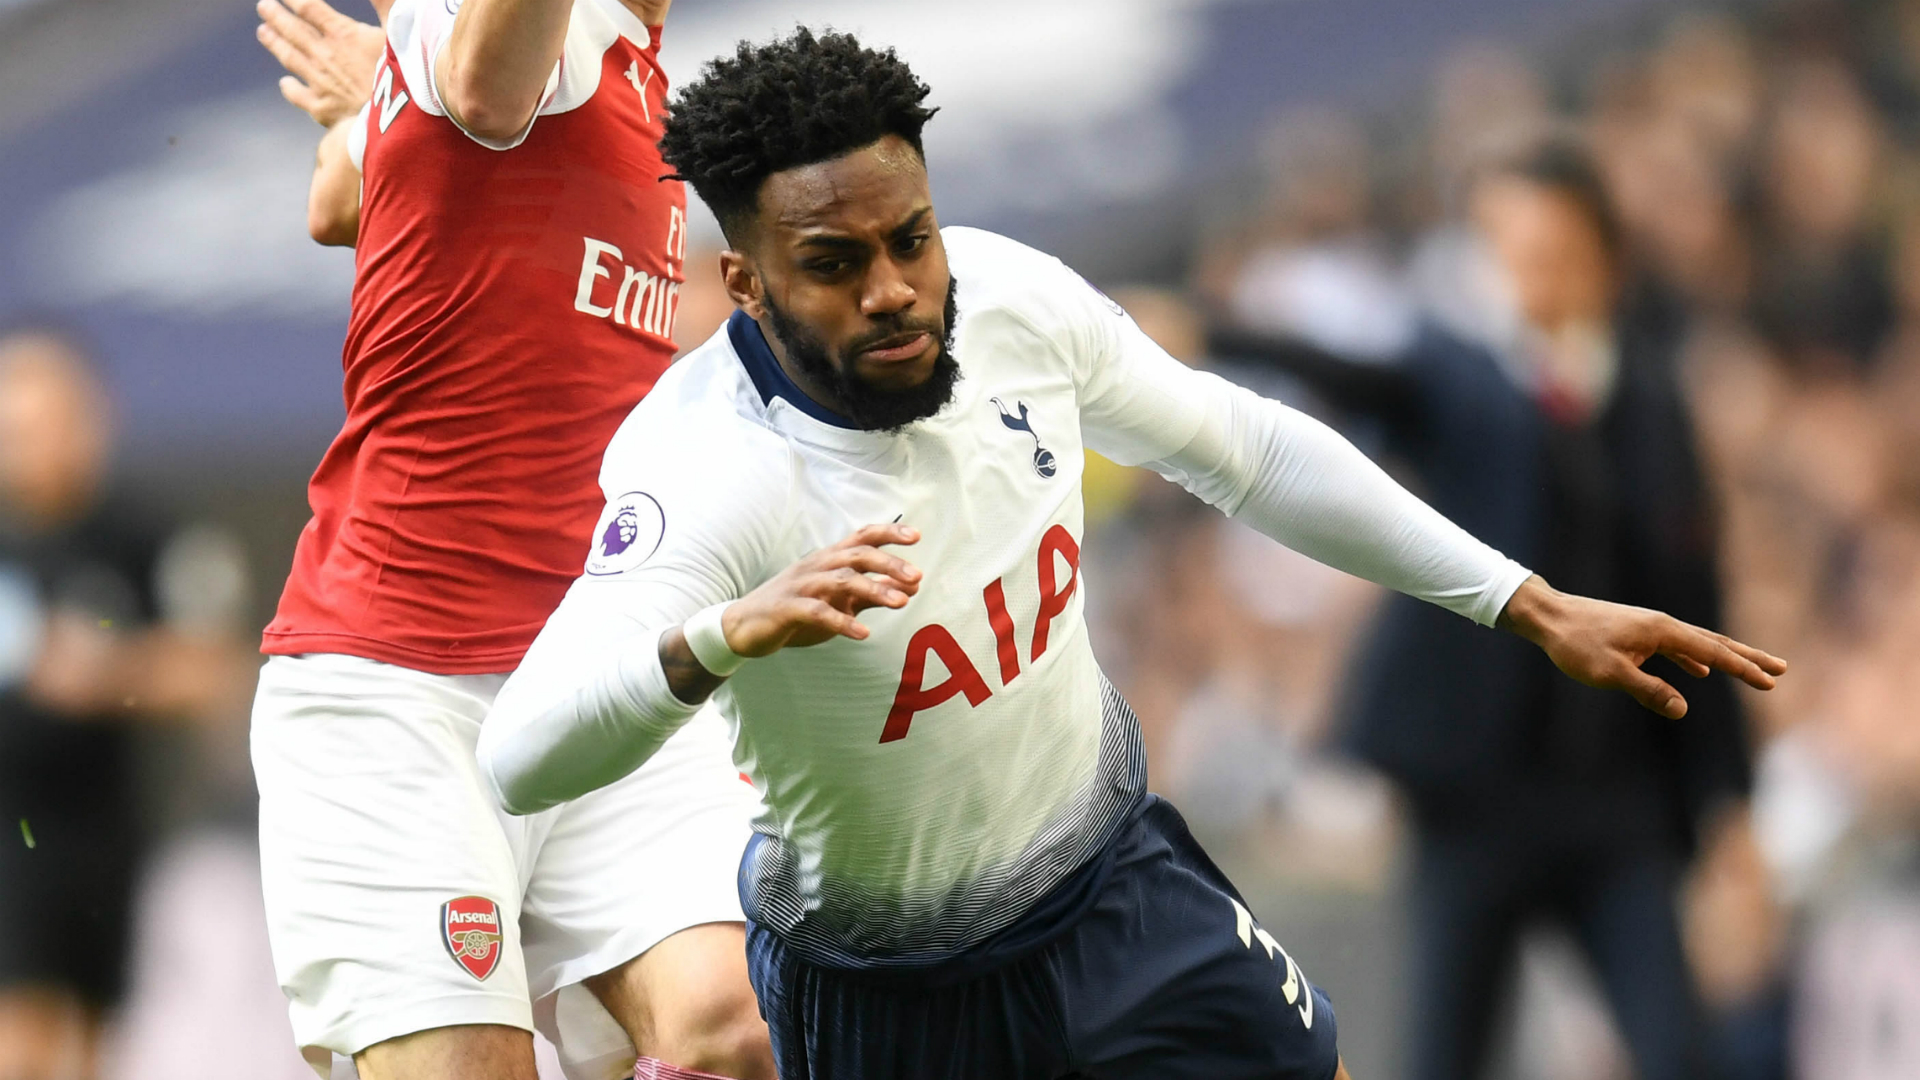 Crazy season is testing Tottenham's character, says Rose